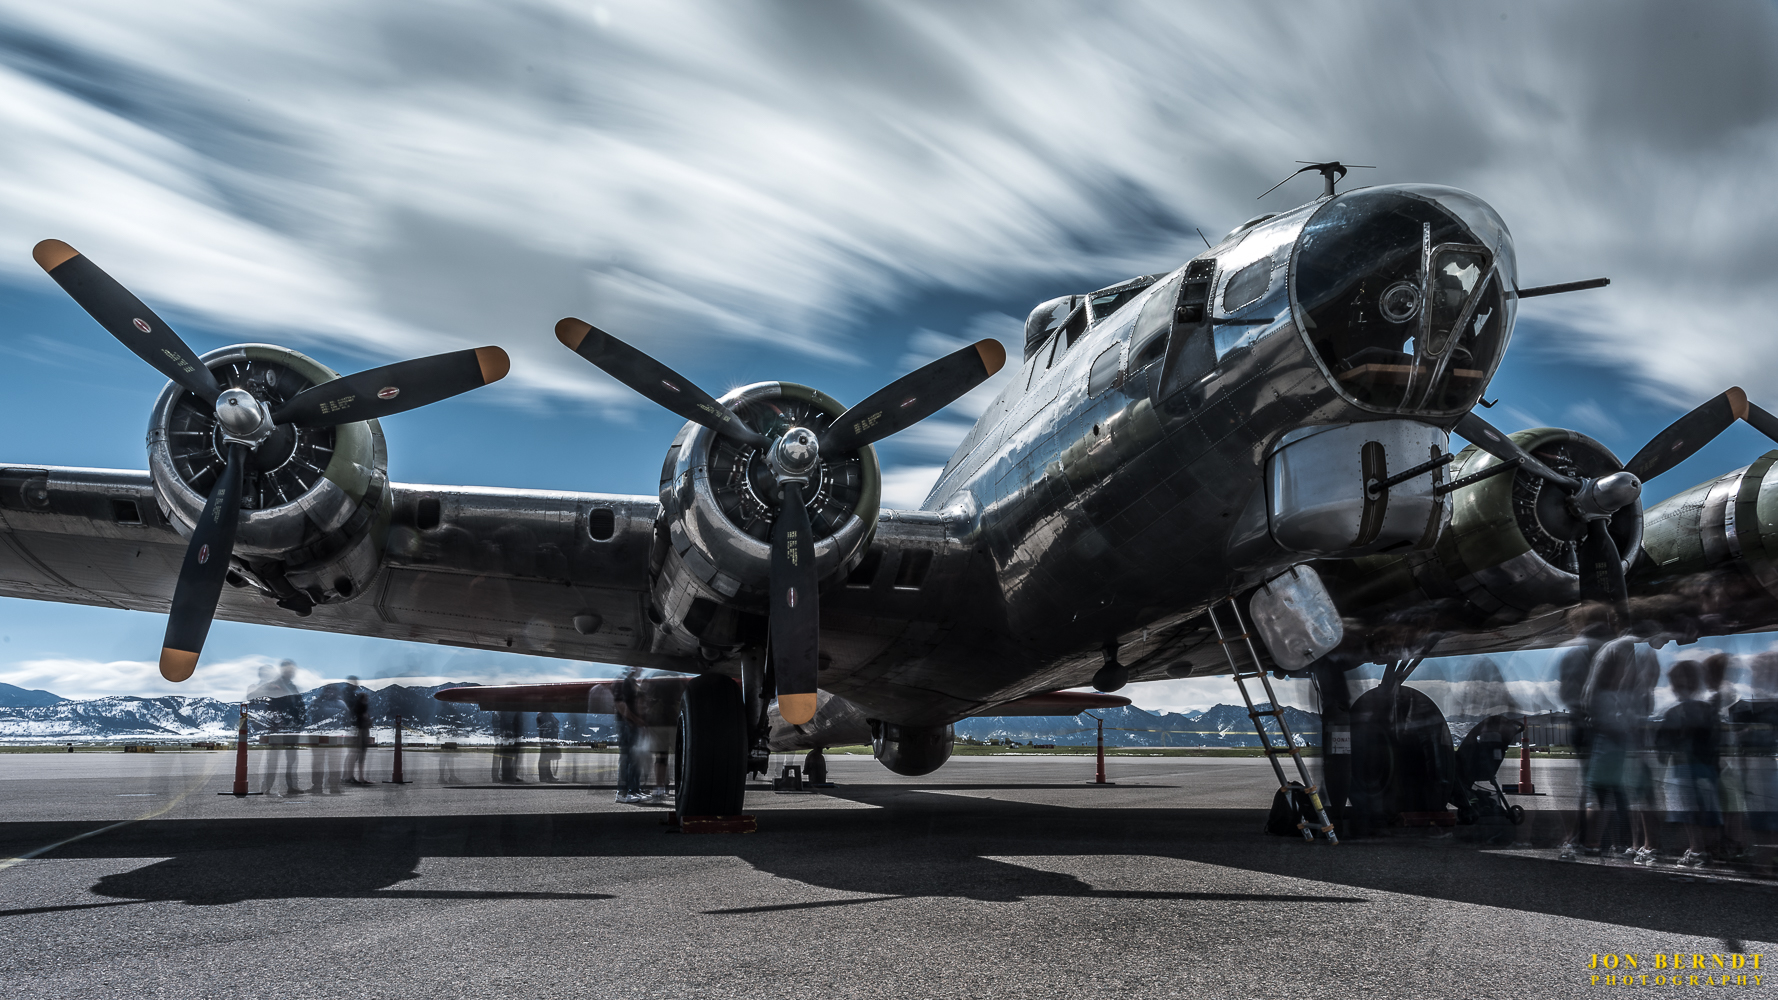 """B-17G """"Madras Maiden"""". Lots of people surrounded the aircraft, so I made some longer exposures that """"ghosted"""" the people and let the afternoon clouds paint the sky. This exposure was about two minutes."""